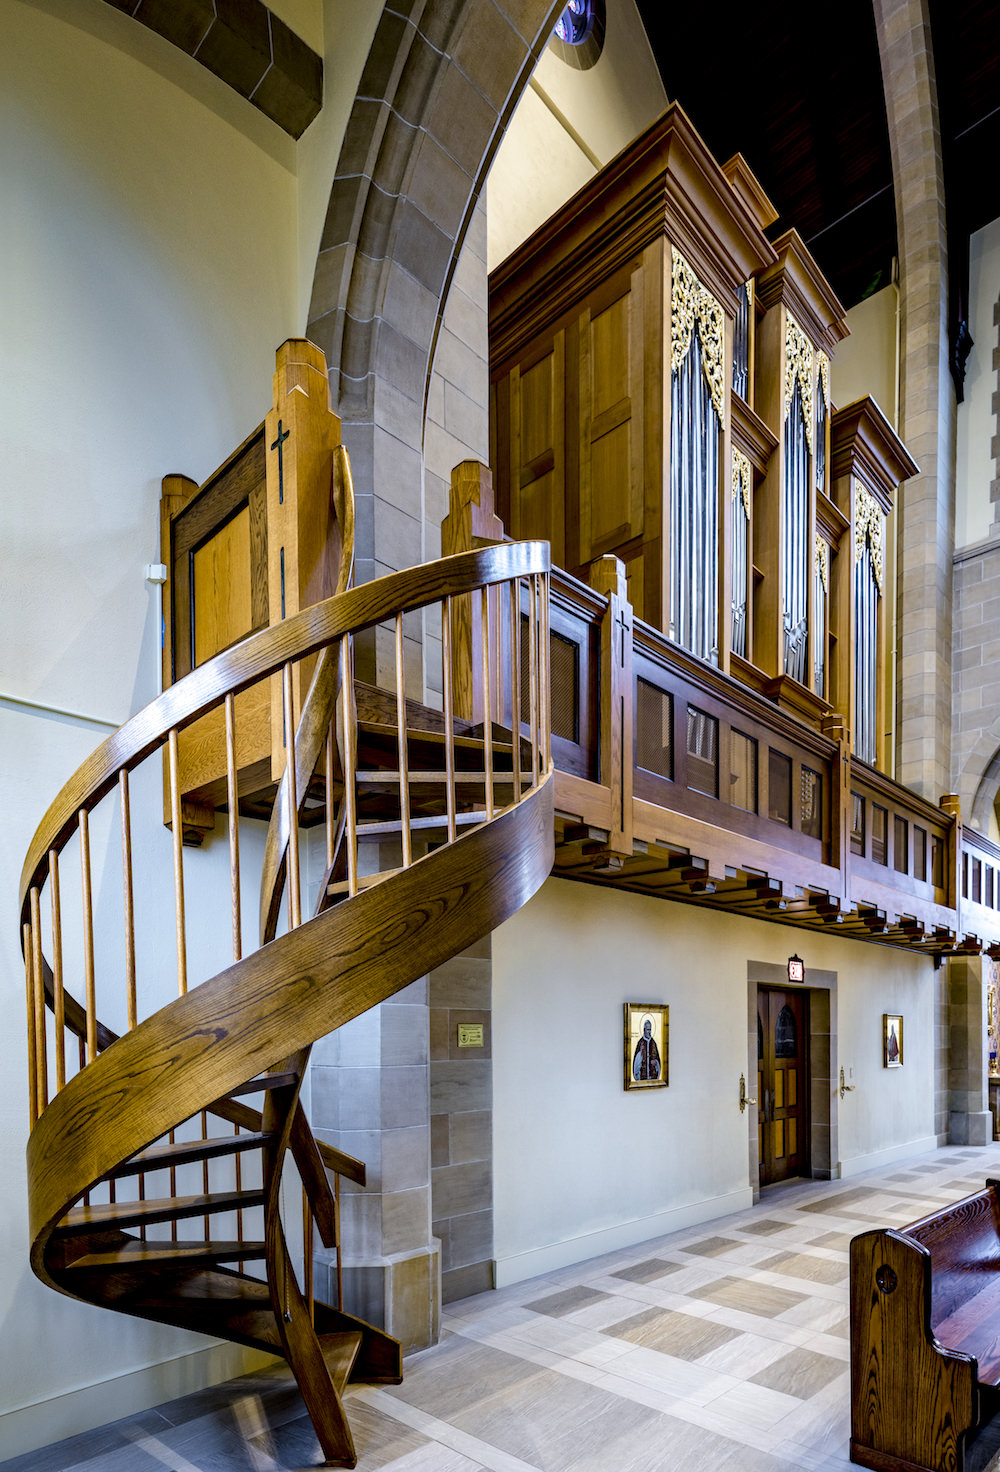 Architecture Interior, Place of Worship, Church, Sanctuary, Pipe Organ, Spiral Staircase